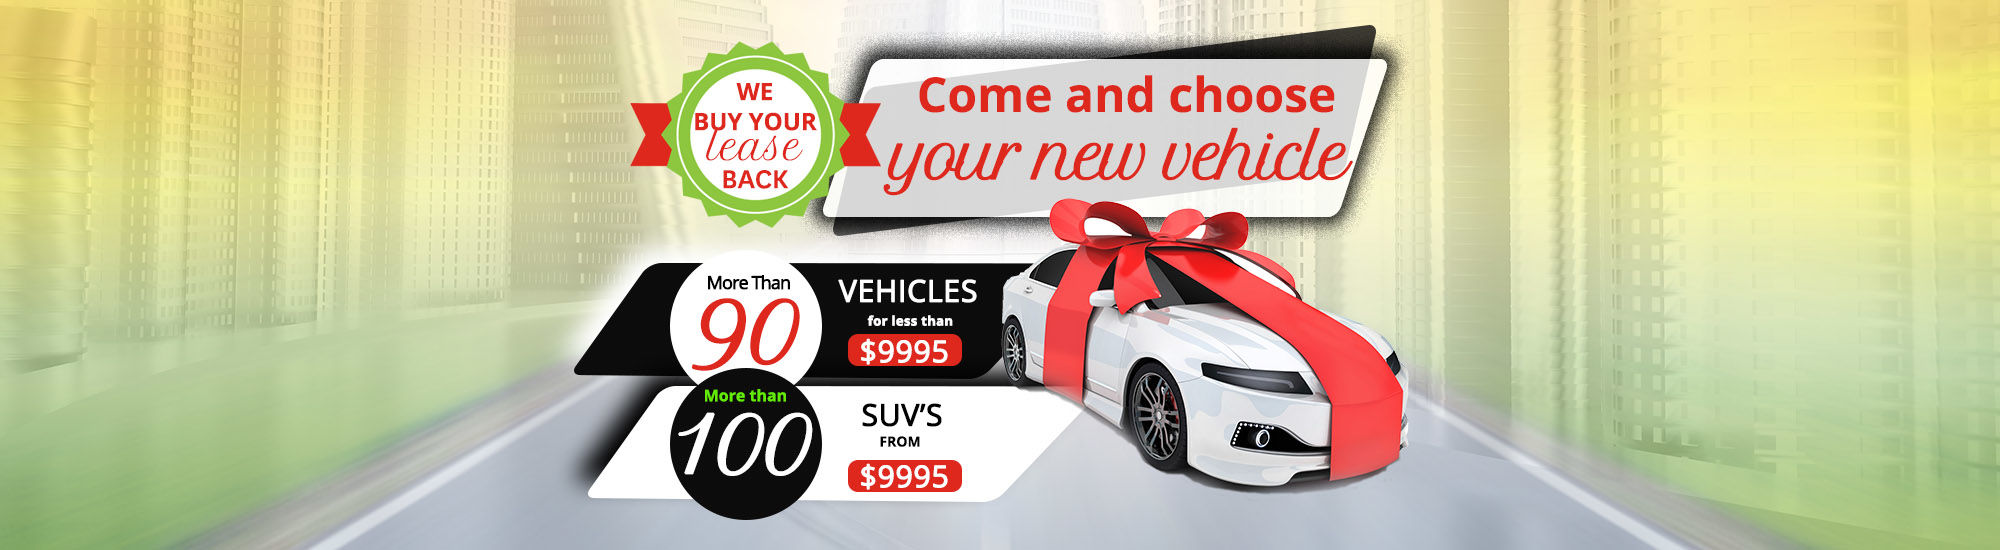 Come and choose your new vehicle